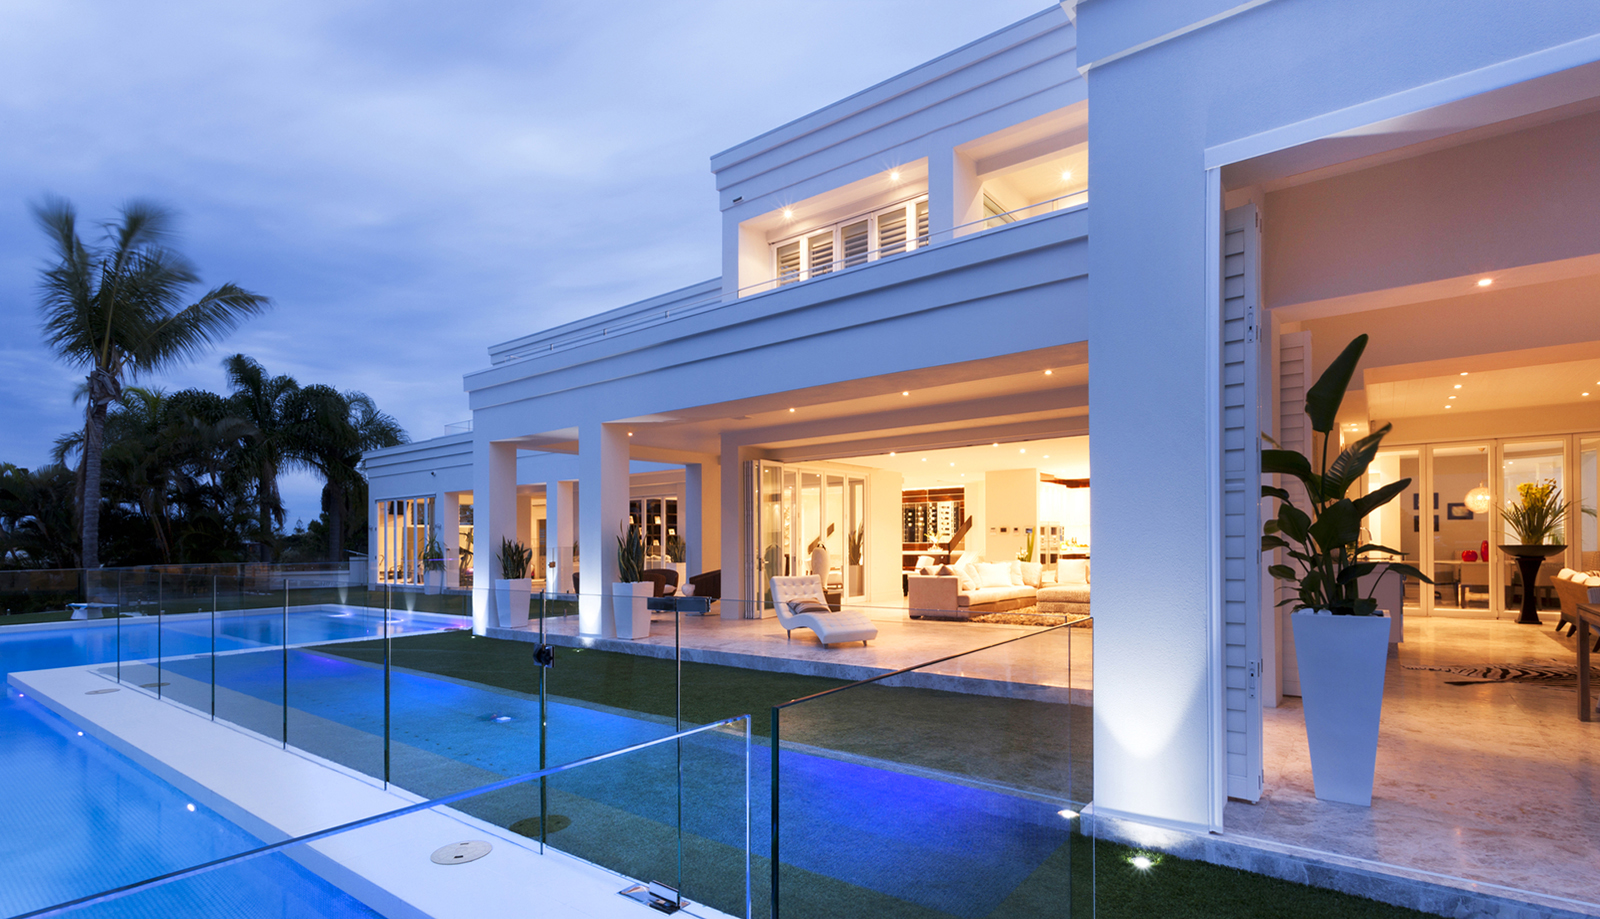 Beautiful white villa with warm ilumination and a fancy swimming pool as seen during a home inspection